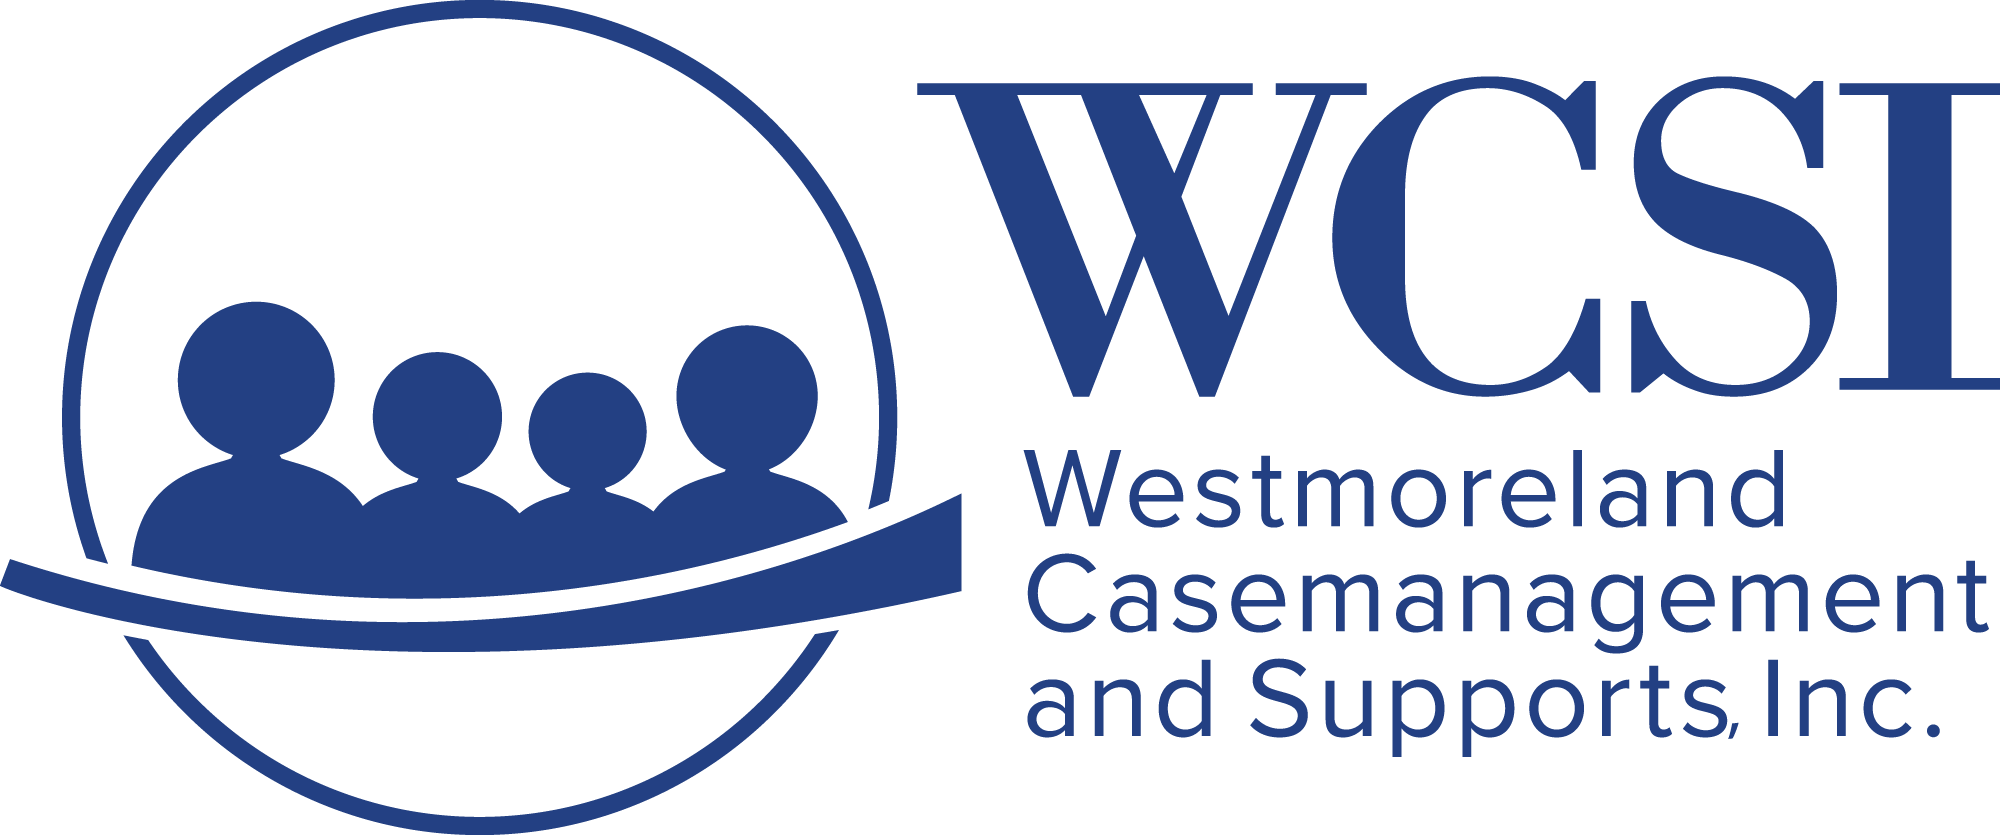 Westmoreland Casemanagement and Supports, Inc  WCSI